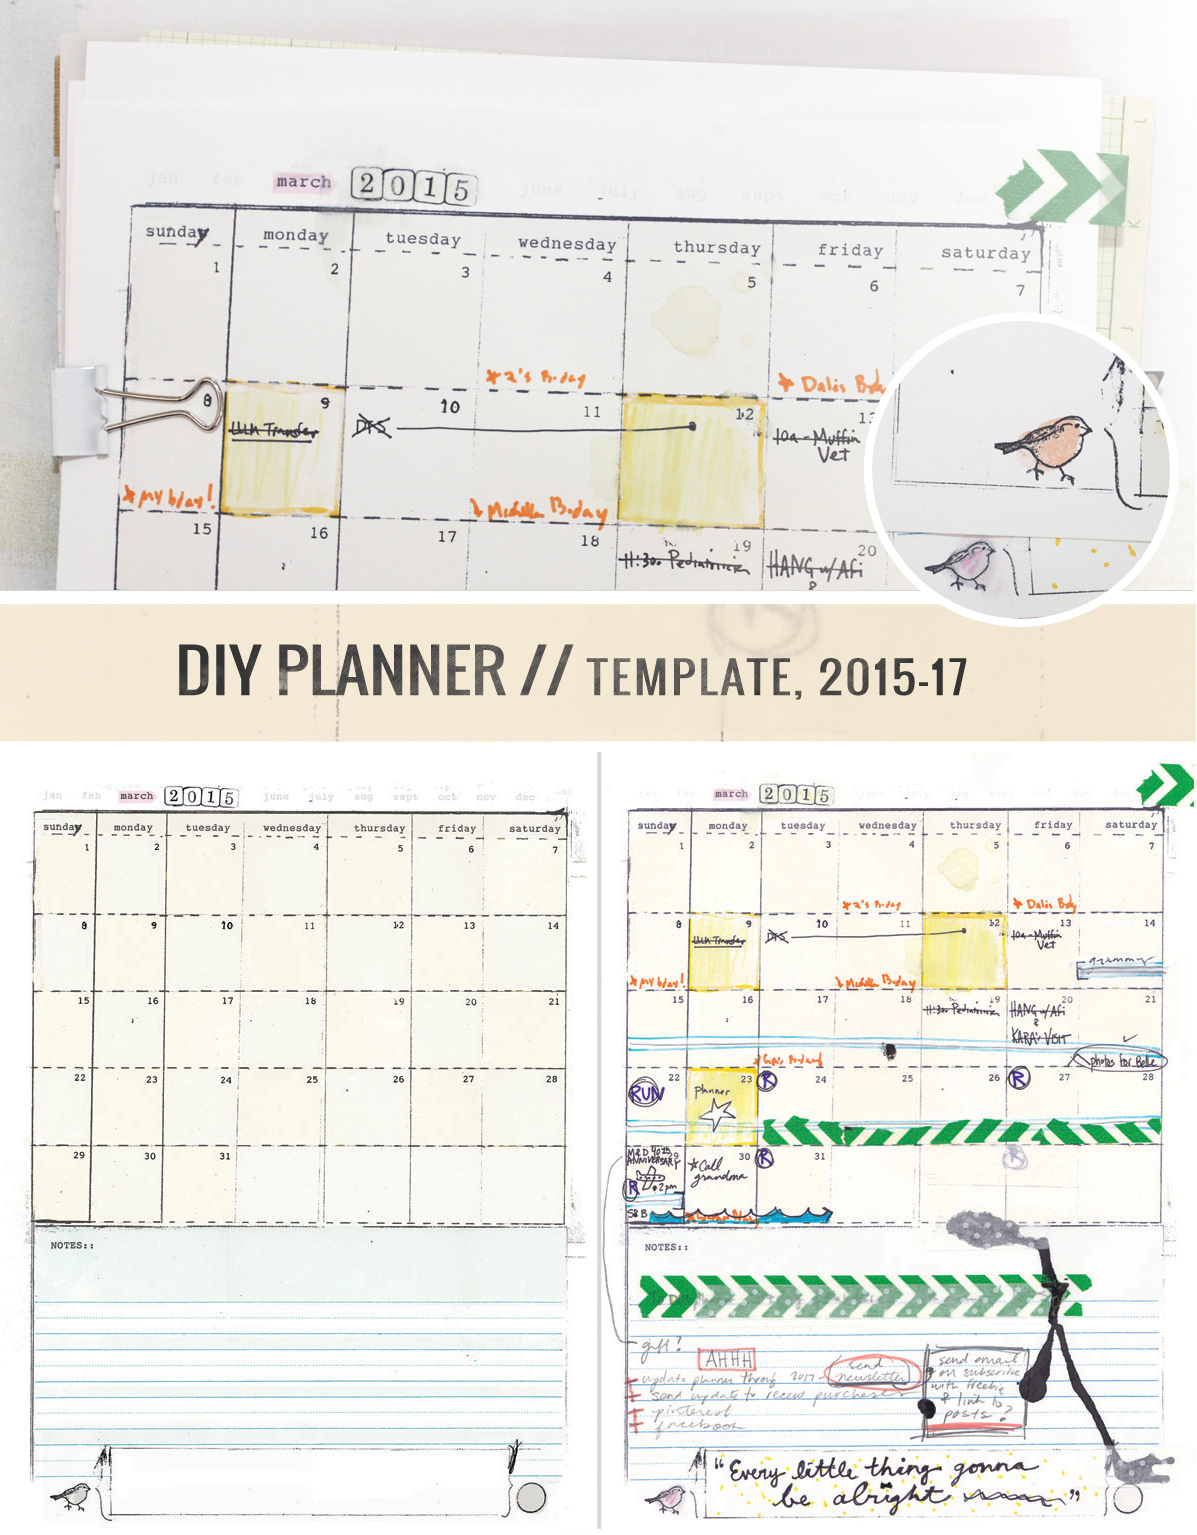 Make your own handmade, hand-drawn, mismatched DIY Planner full of doodles, goals, life plans and everything YOU. Templates designed to leave lots of room for personalization... Includes: January 2015 – December 2017 monthly, fill-in-the-blank month, fill-in-the-blank daily page, to-do list, weekly appointments, goals & ideas worksheet -- $12 Printable DIY Planner templates by Ahhh Design #diyplanner #printables